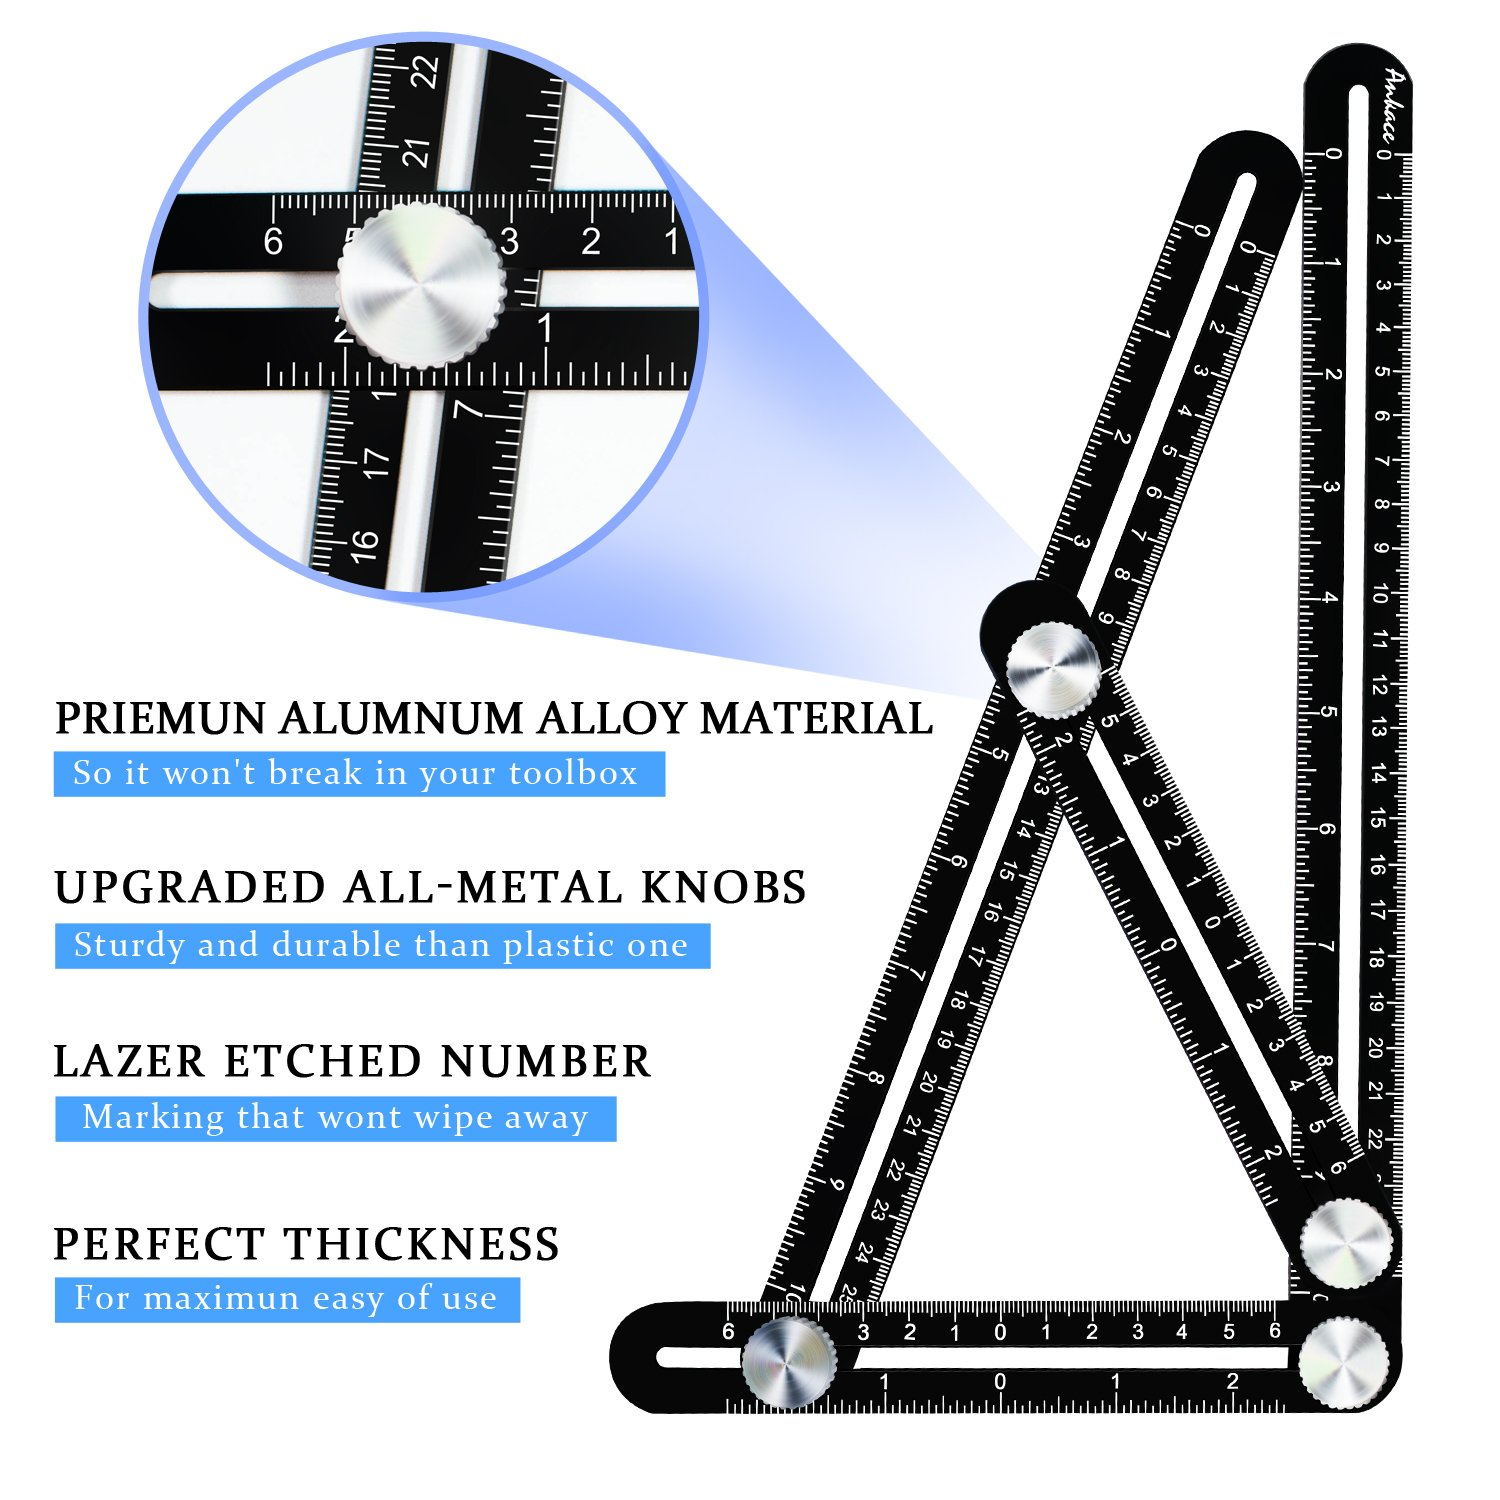 Multi Angle Measuring Ruler, Ankace Premium Aluminum Alloy Ultimate 836 Angleizer Template Tool/Layout Tool Measurement for Handymen, Builders, Craftsmen, DIY-ers, Black by Ankace (Image #4)